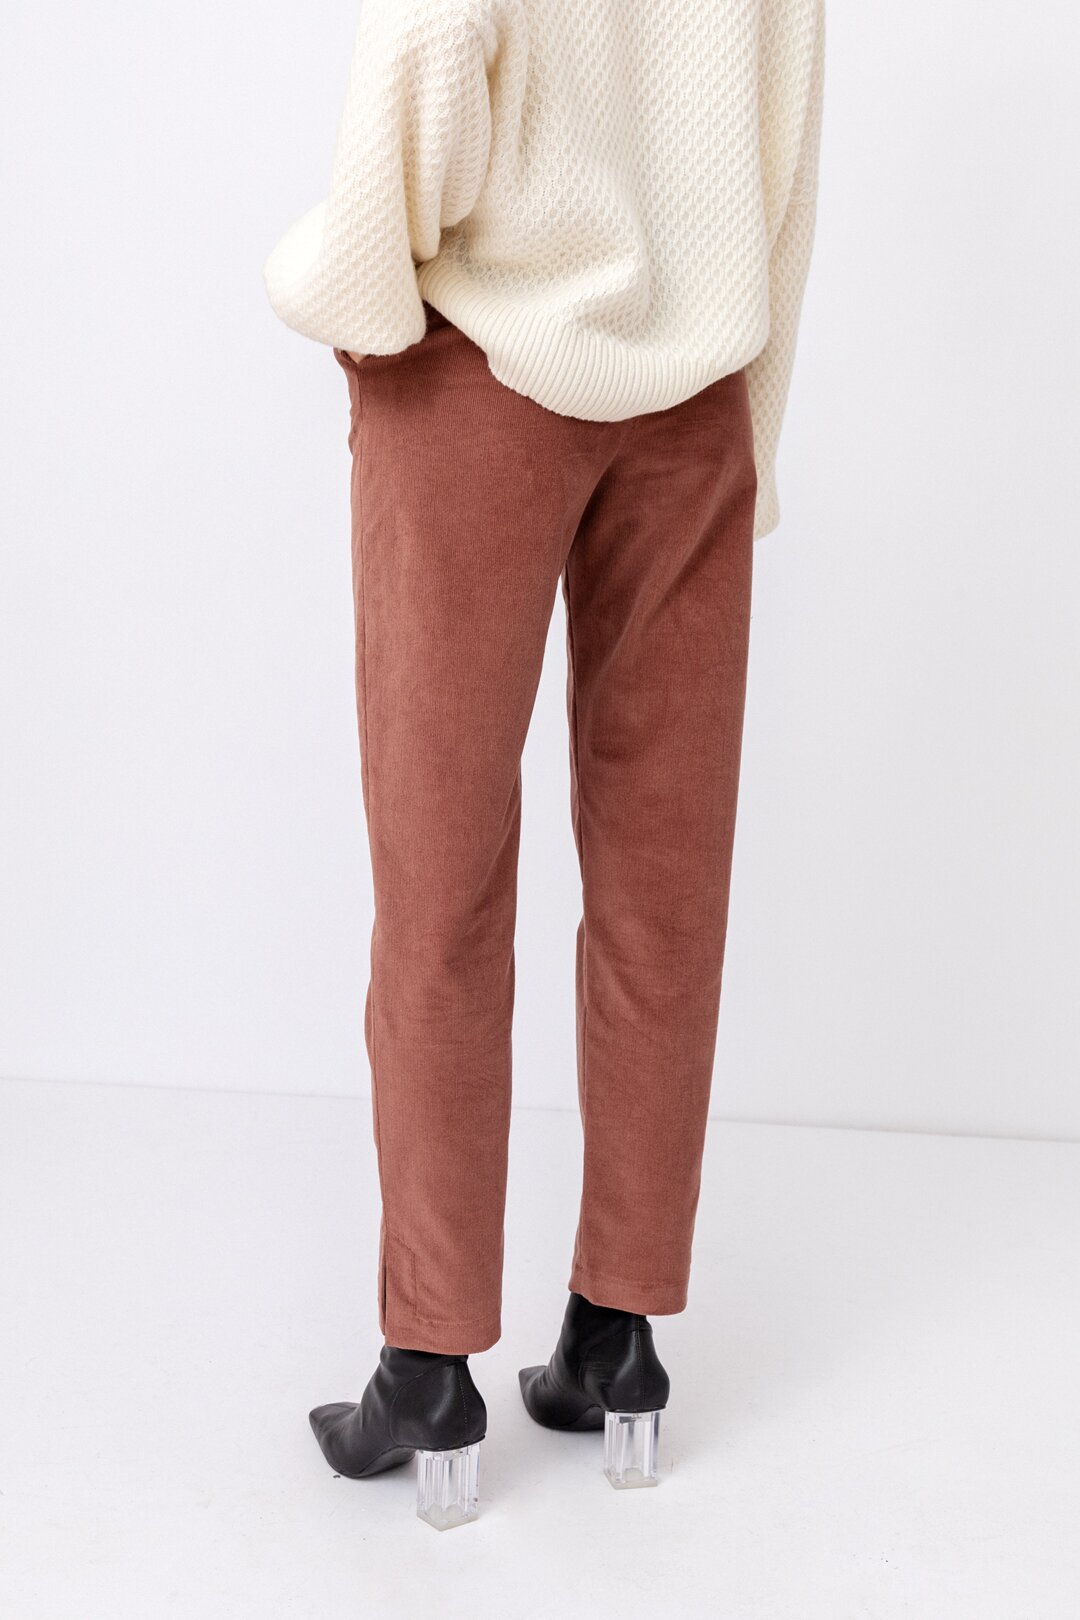 outfit-7c8a9235